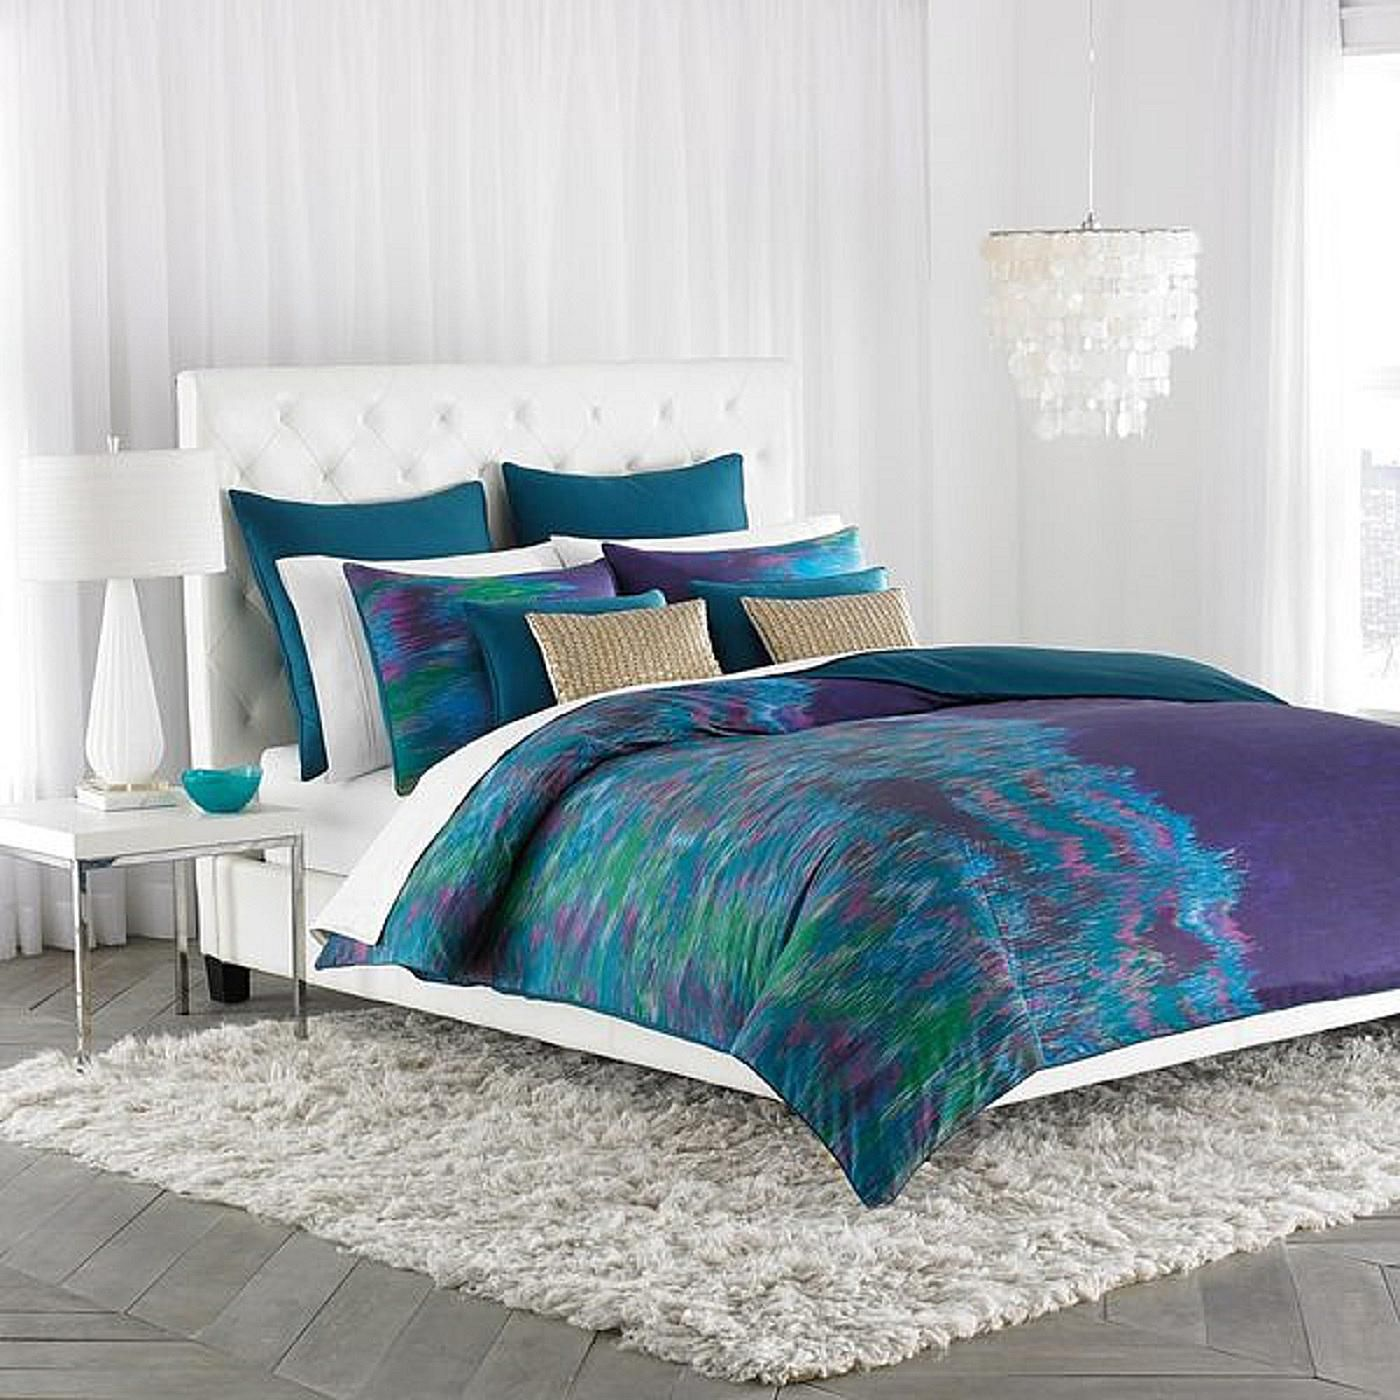 Decorating The Bedroom With Green Blue And Purple